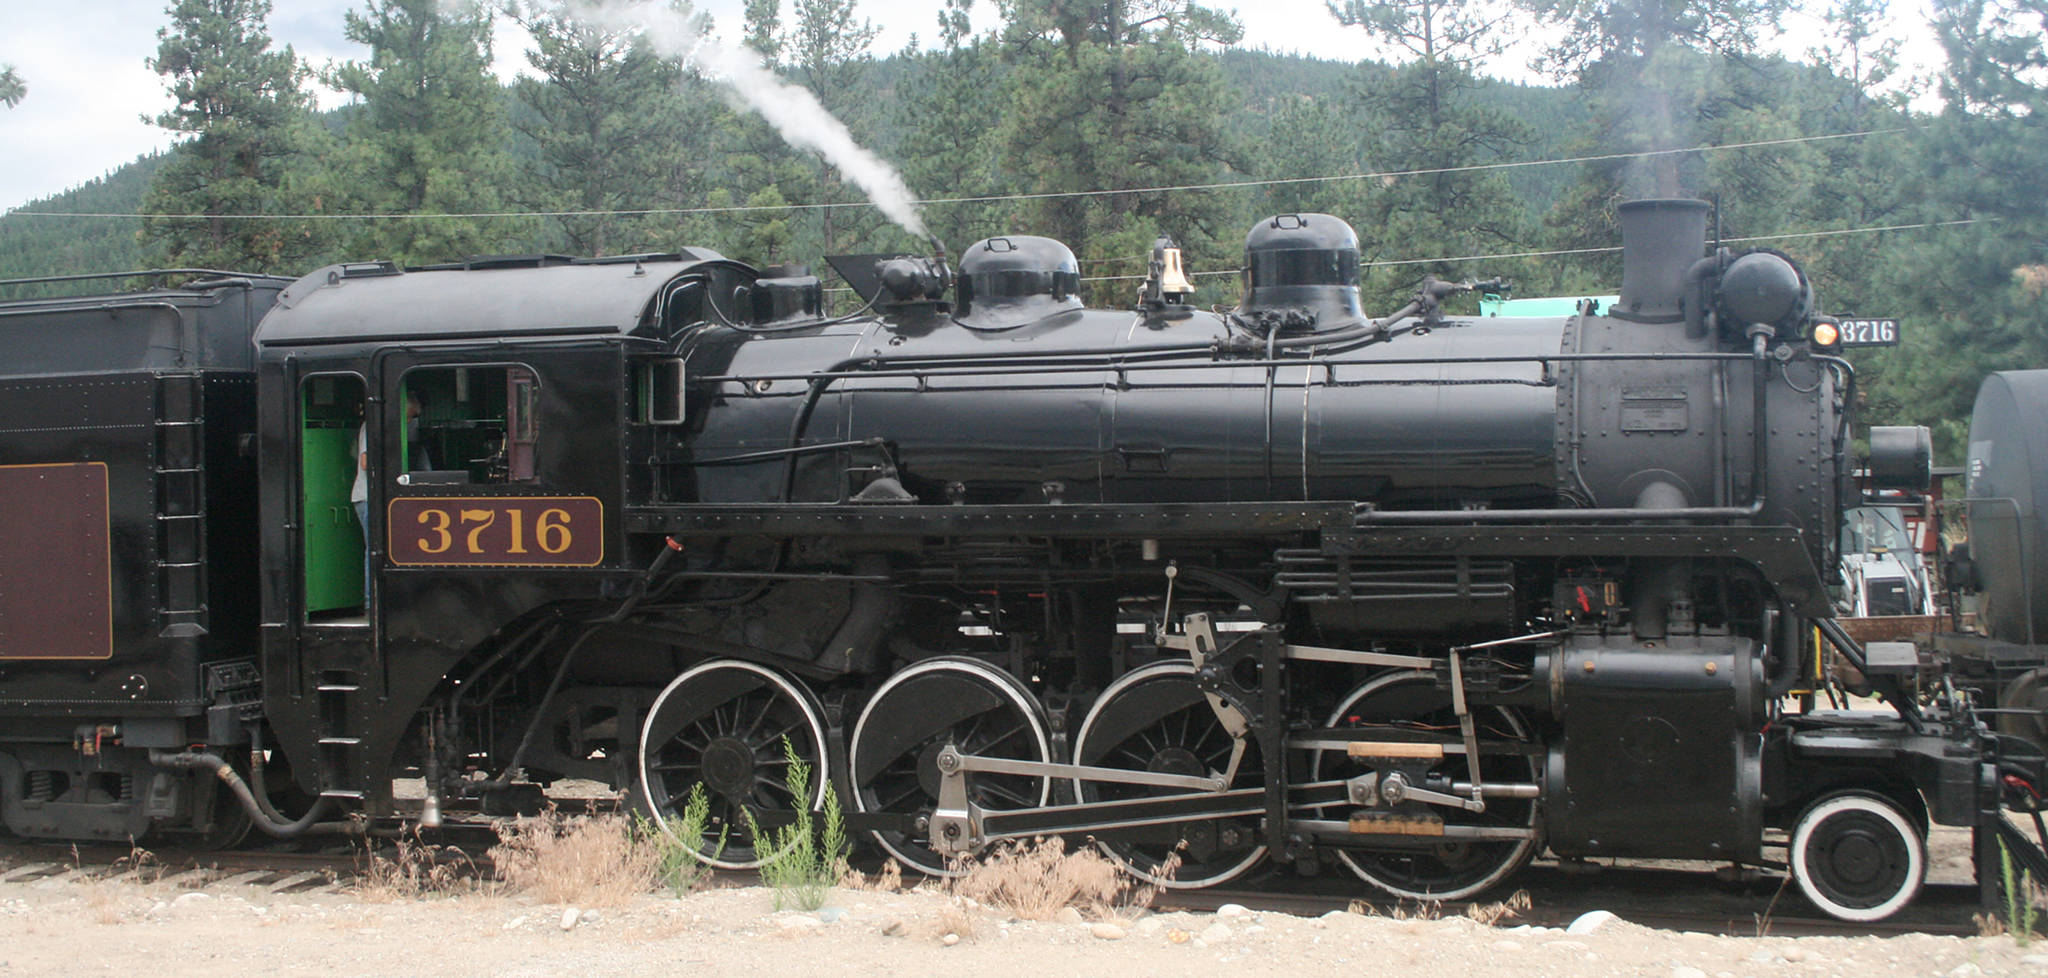 Summerland's Kettle Valley Steam Railway has been operating since 1995. The tourist train operates on tracks from the historic Kettle Valley Railway, which provided passenger service to the Okanagan Valley from 1915 to 1964. (Black Press file photo)